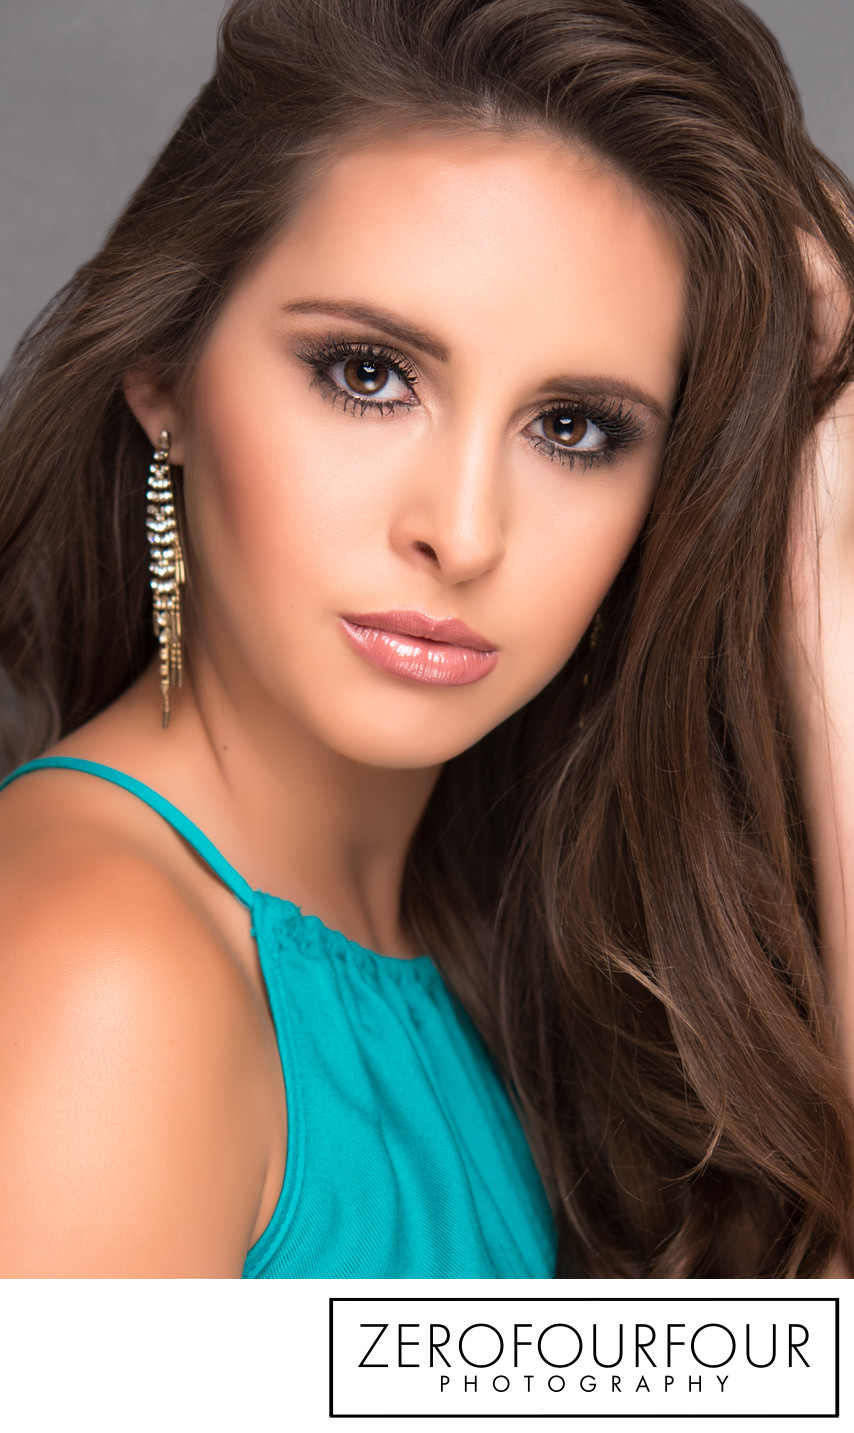 Pageant contestant headshot in Louisiana studio